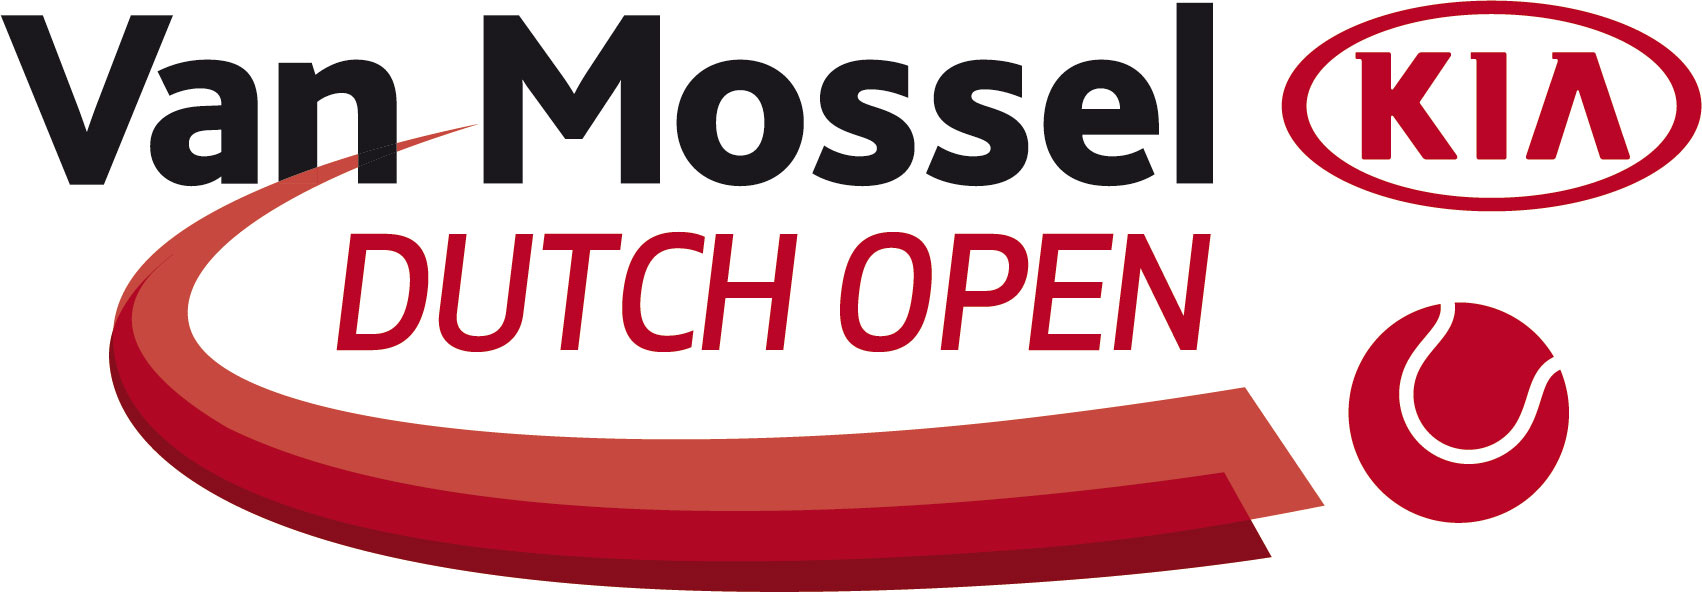 Van Mossel Kia Dutch Open